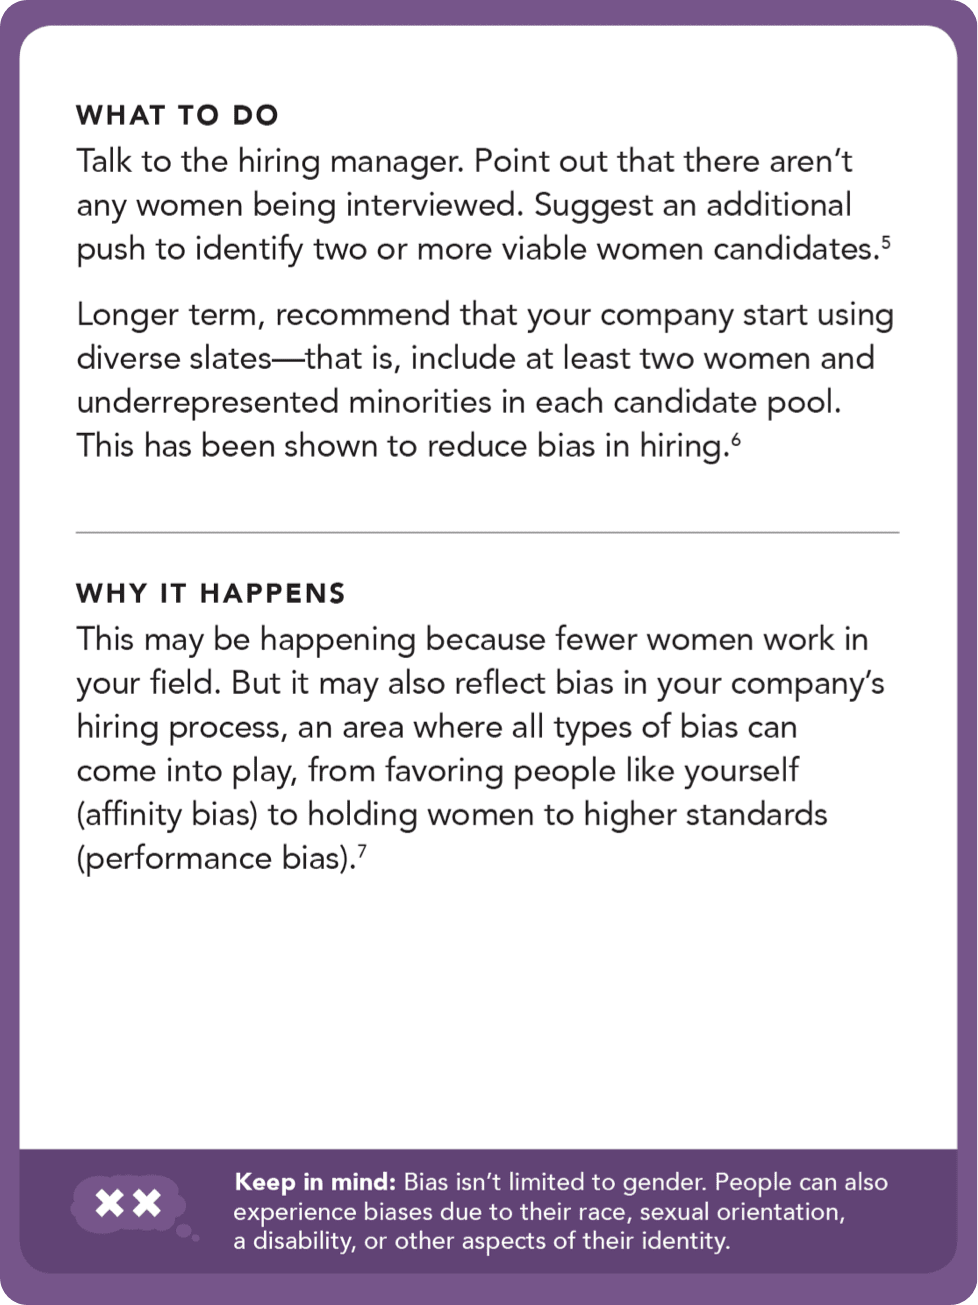 Back of card: Solution: Talk to the hiring manager. Point out that there aren't any women being interviewed. Suggest and additional push to identify two or more viable women candidates.